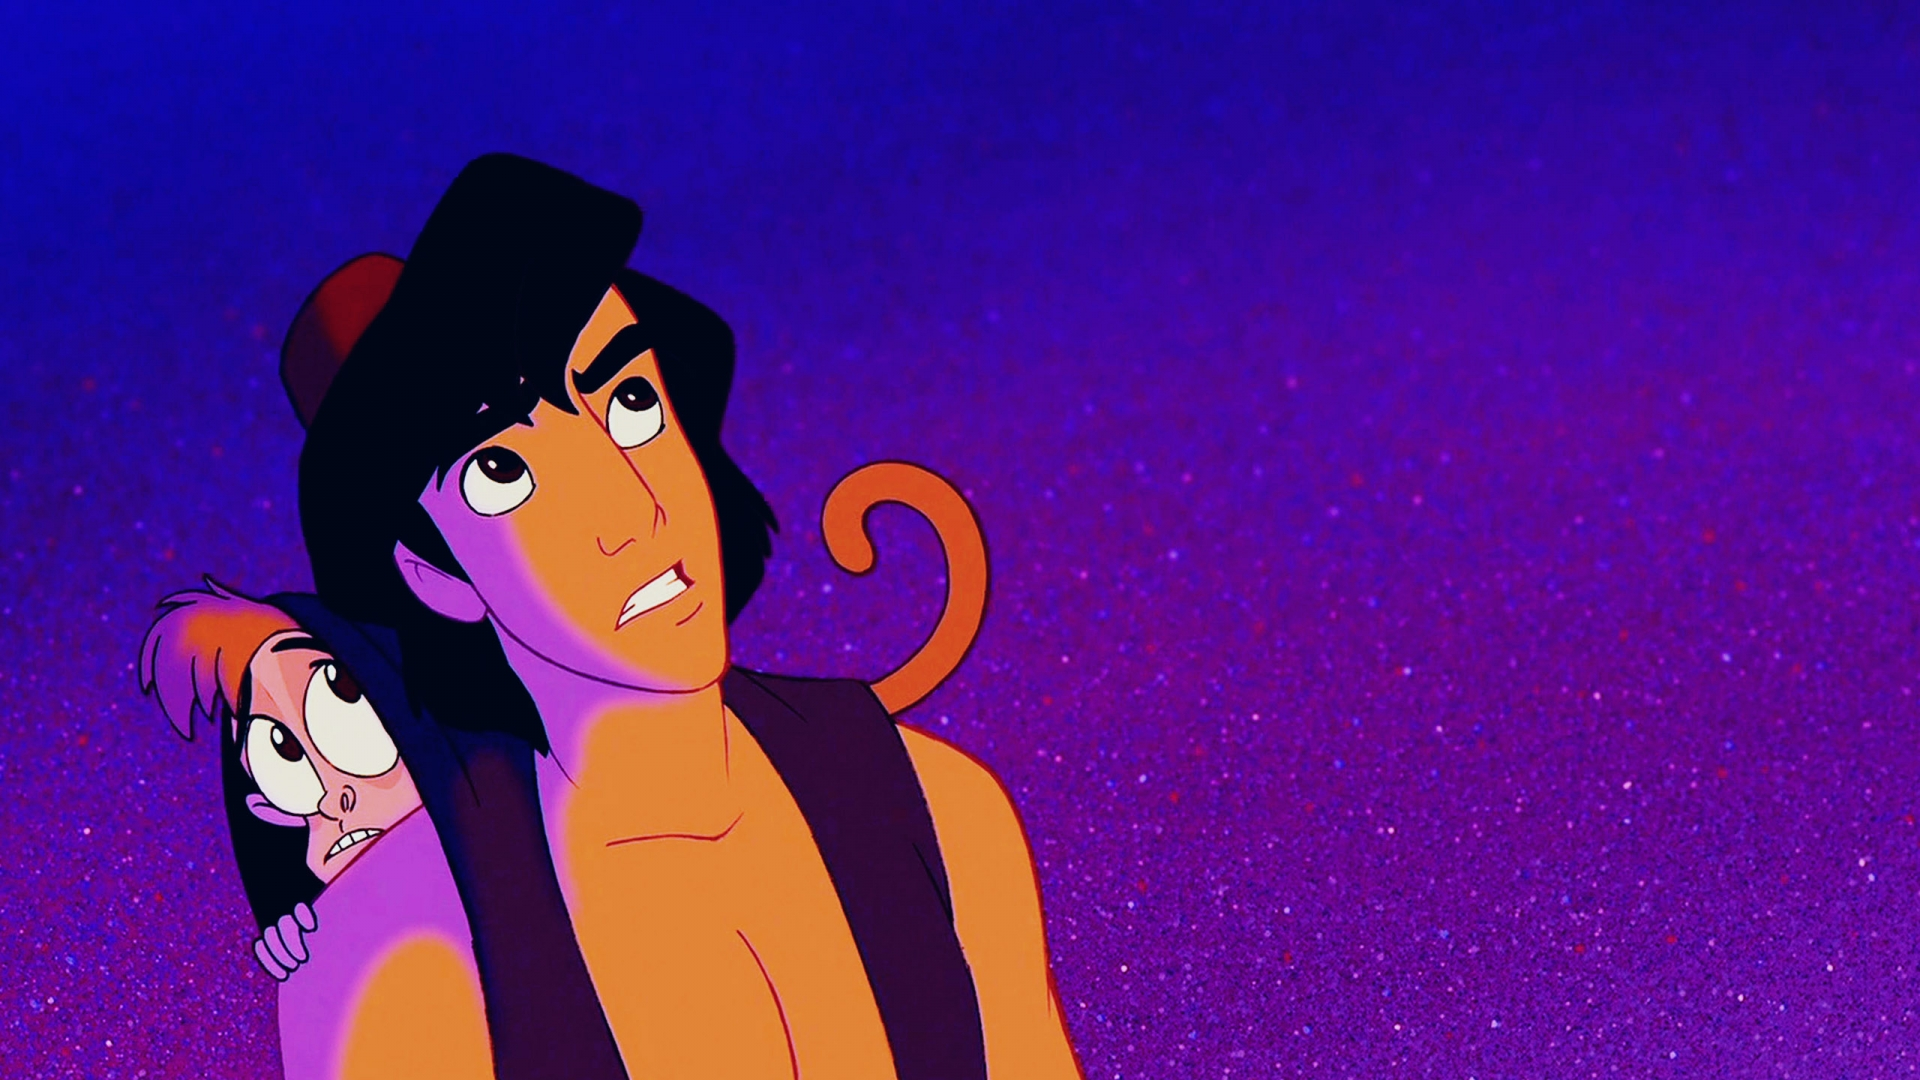 Disney Aladdin Wallpaper Aladdin Hd Wallpapers For Desktop Download